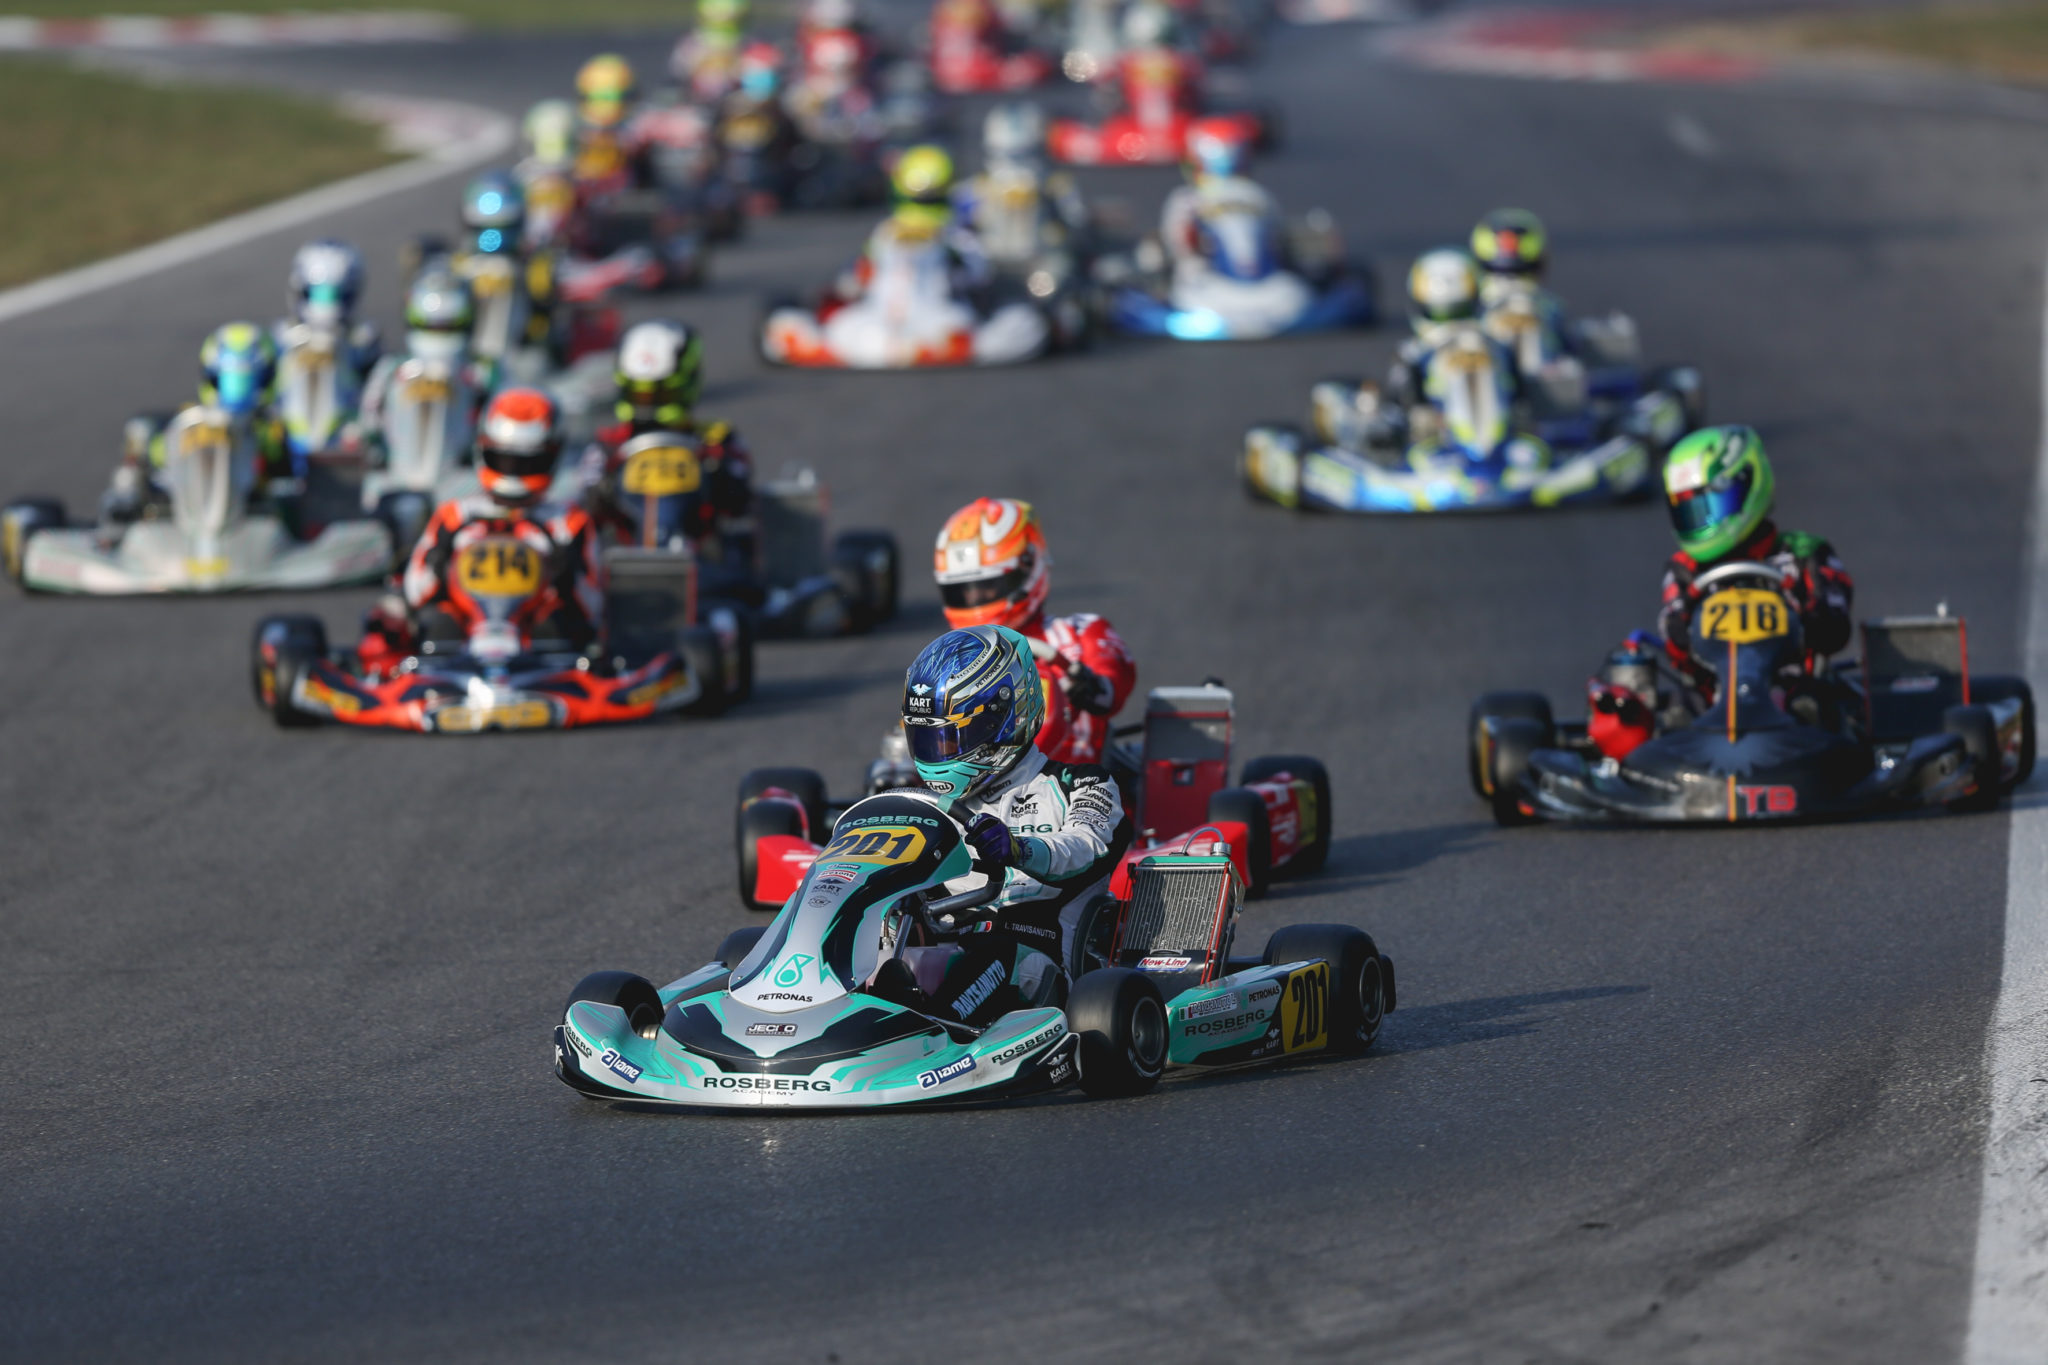 WSK Final Cup – Castelletto: A quick talk with the key players